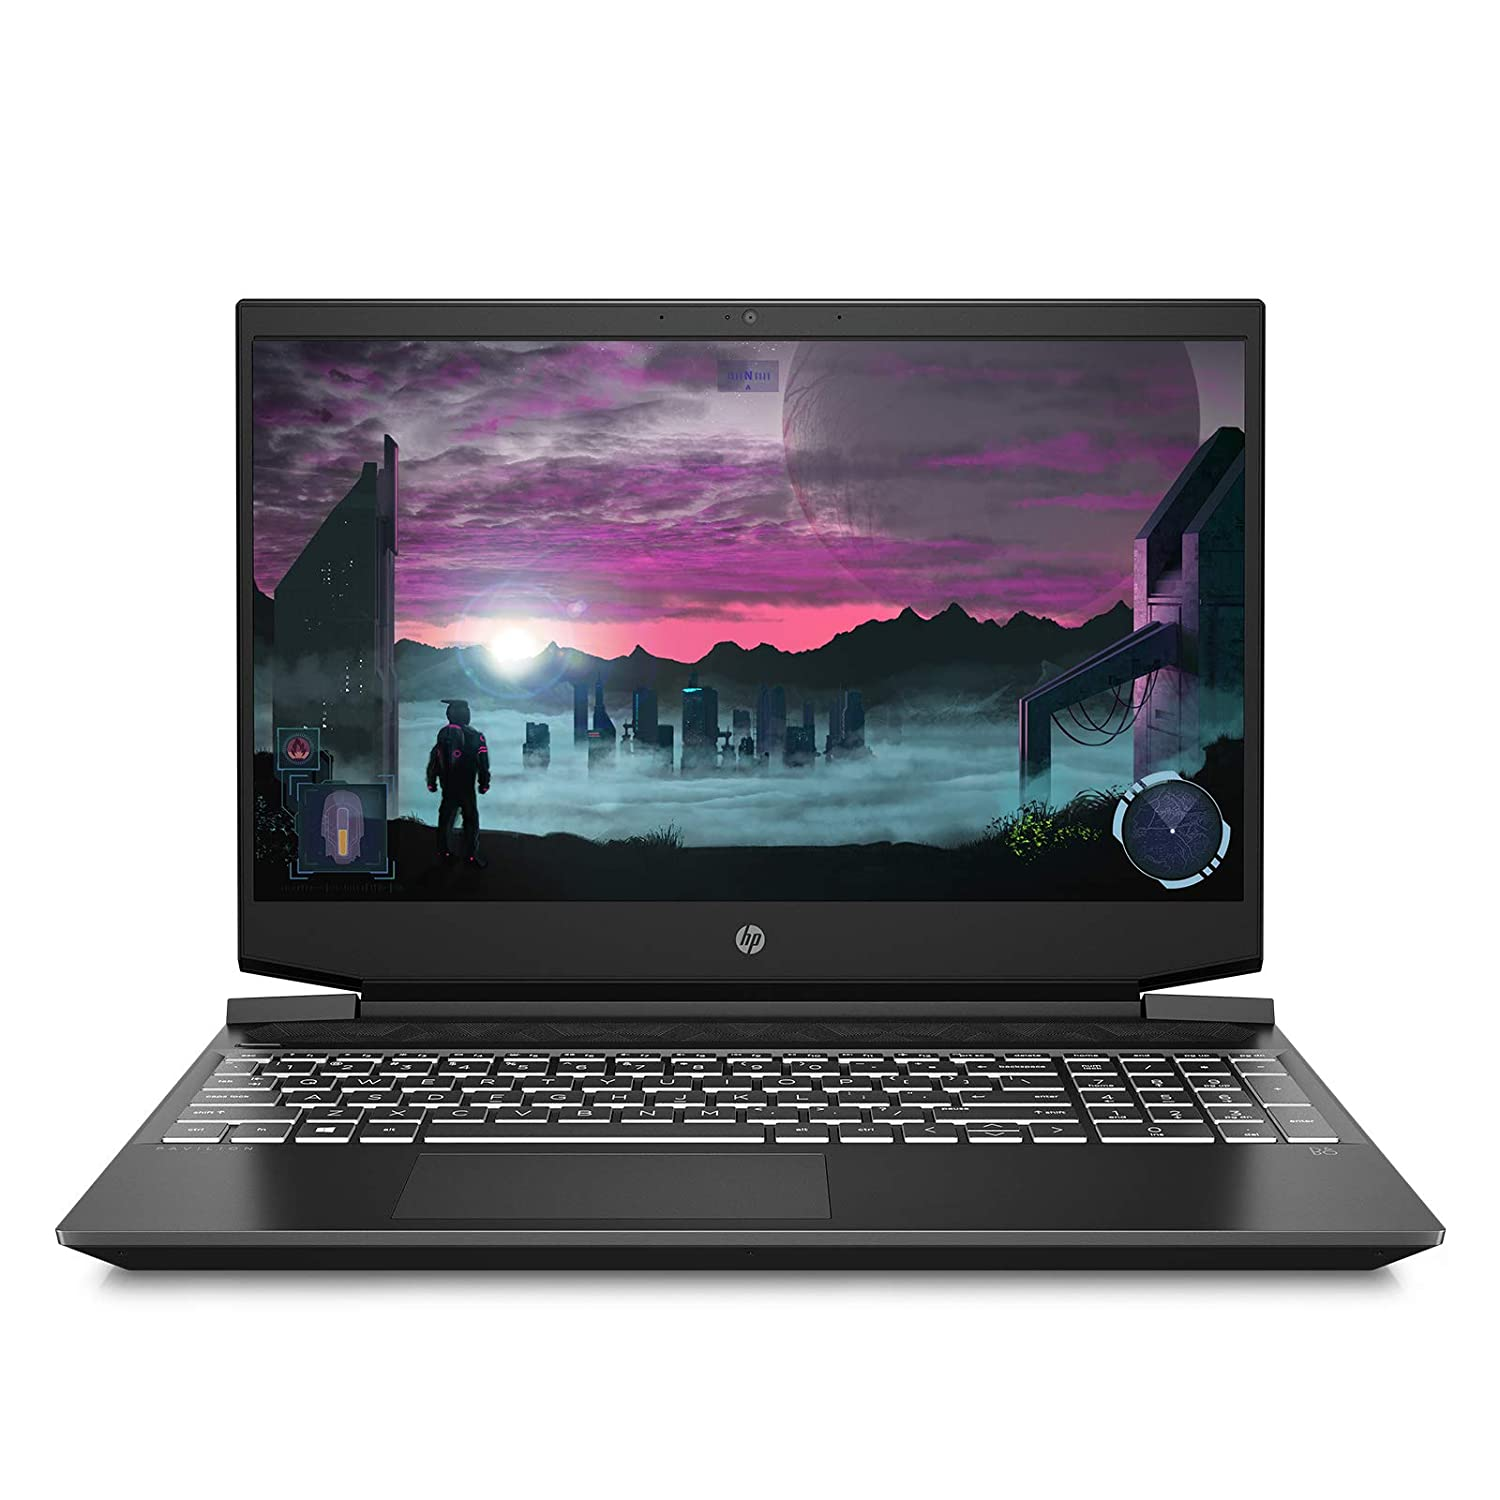 Amazon In Buy Hp Pavilion Gaming 15 6 Inch Fhd Gaming Laptop Ryzen 5 4600h 8gb 1tb Hdd Windows 10 Nvidia Gtx 1650 4gb Shadow Black 15 Ec1024ax Online At Low Prices In India Hp Reviews Ratings